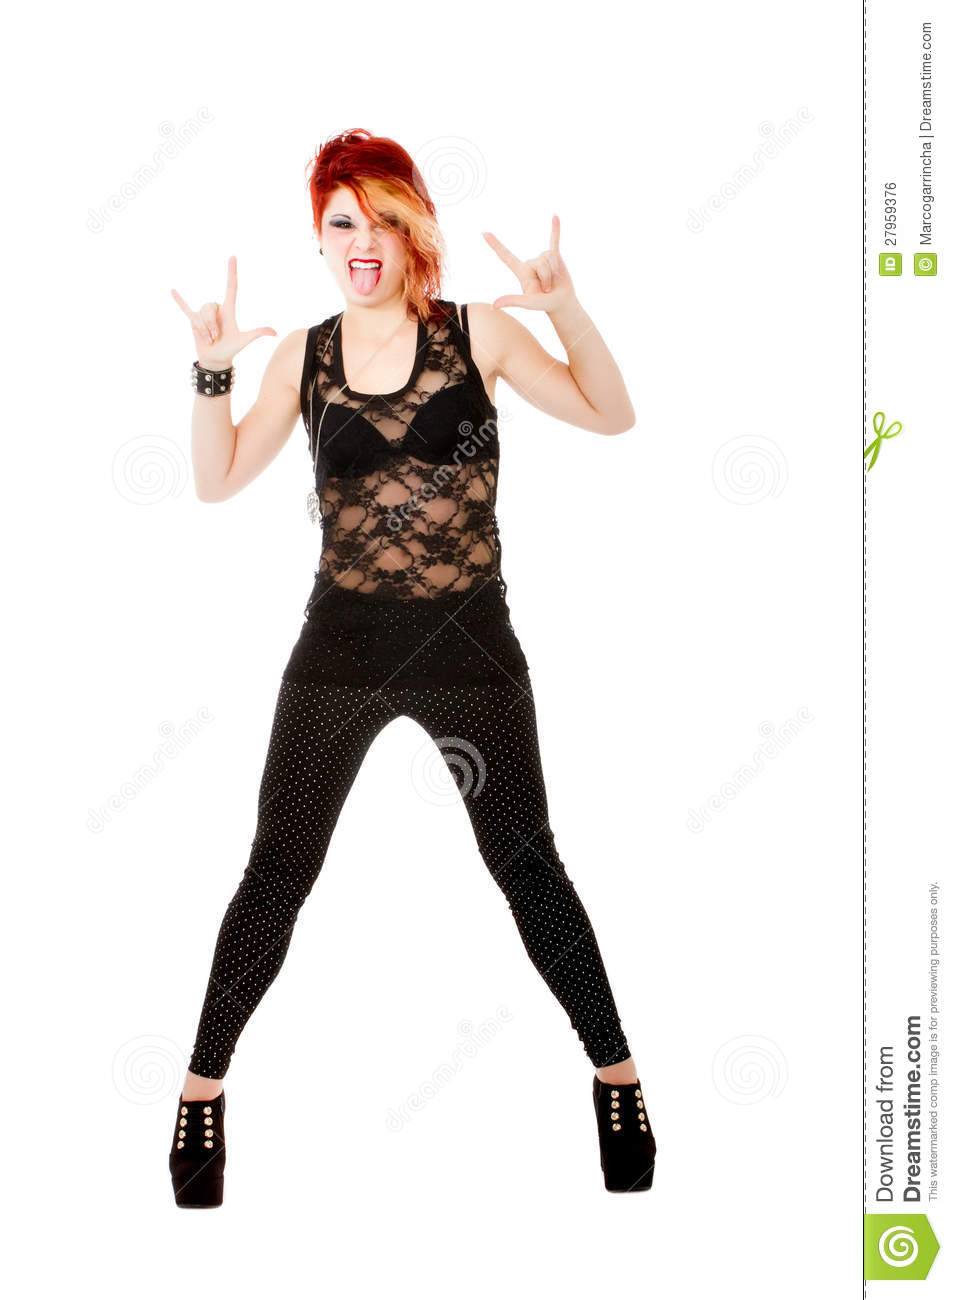 Heavy Metal Horns Gesture Stock Photo Image Of Black